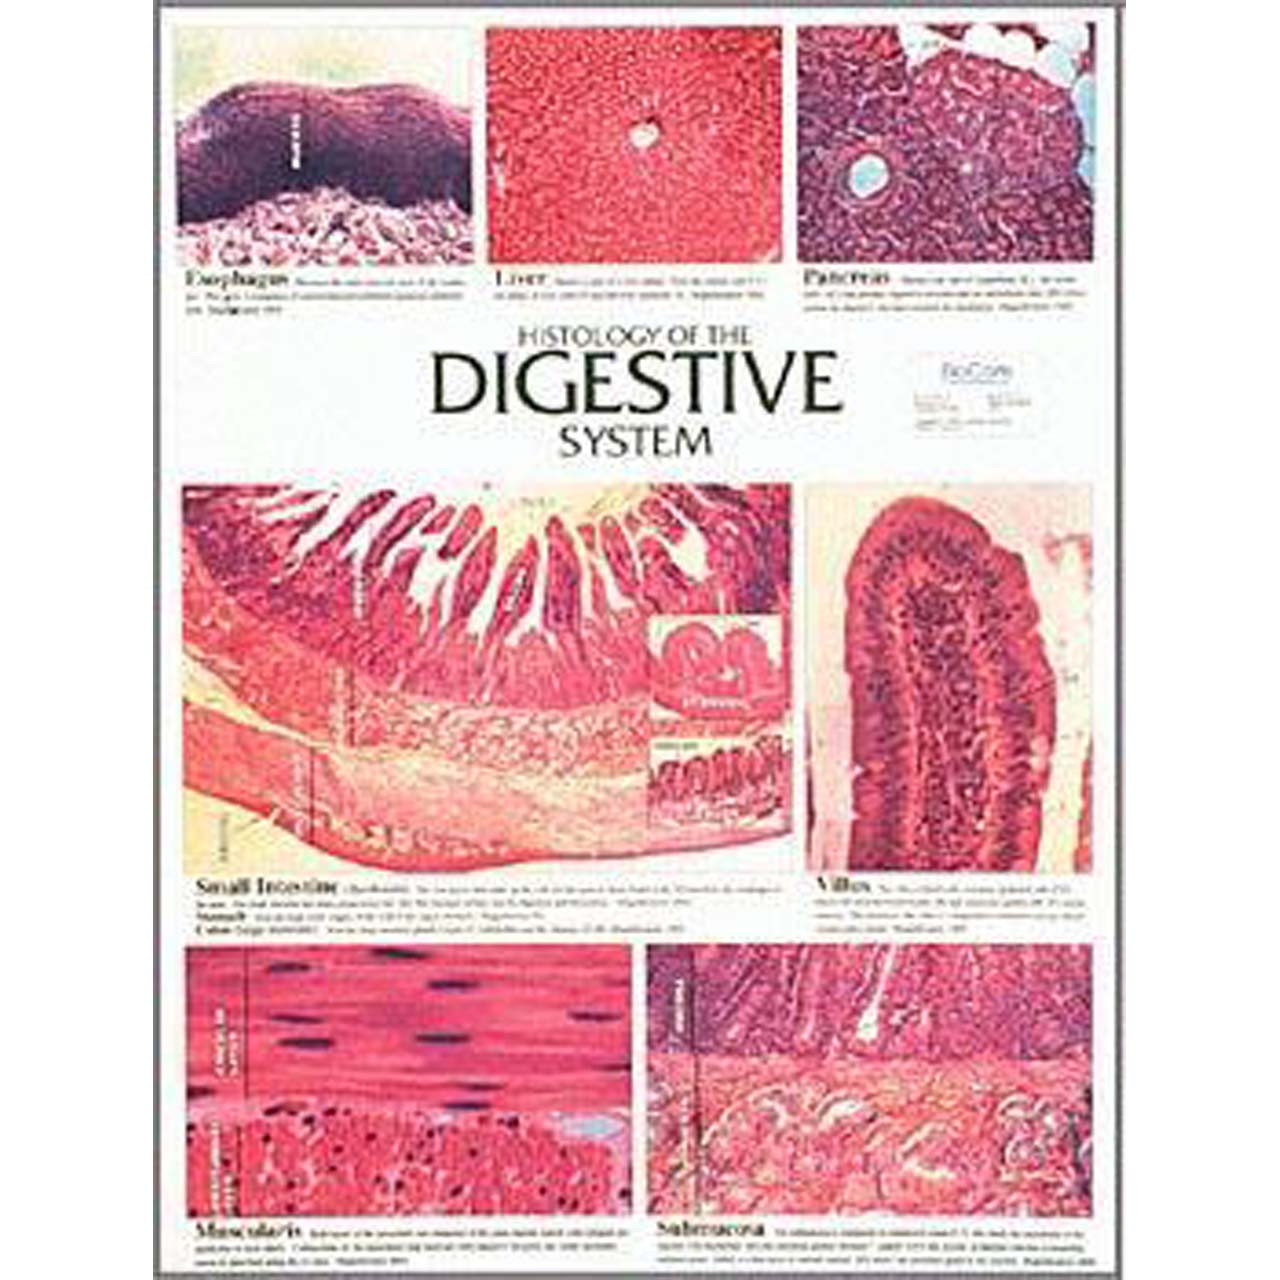 WC17 - Histology of the digestive system, Chart